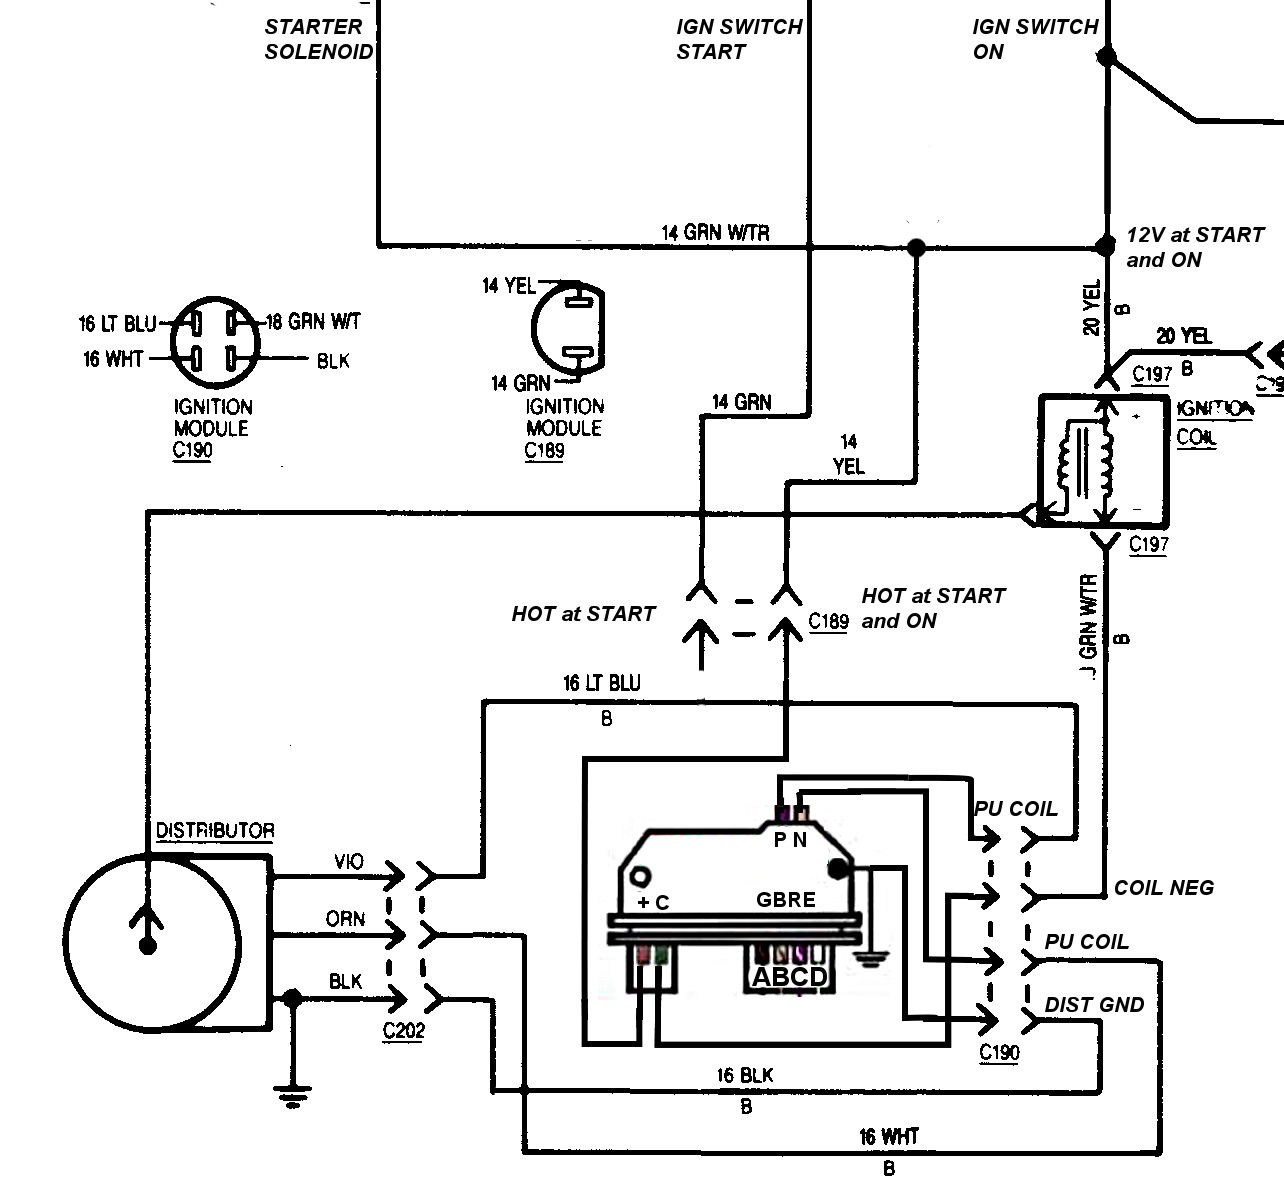 1990 chevy distributor wiring diagram - wiring diagram tags pale-base -  pale-base.discoveriran.it  discoveriran.it